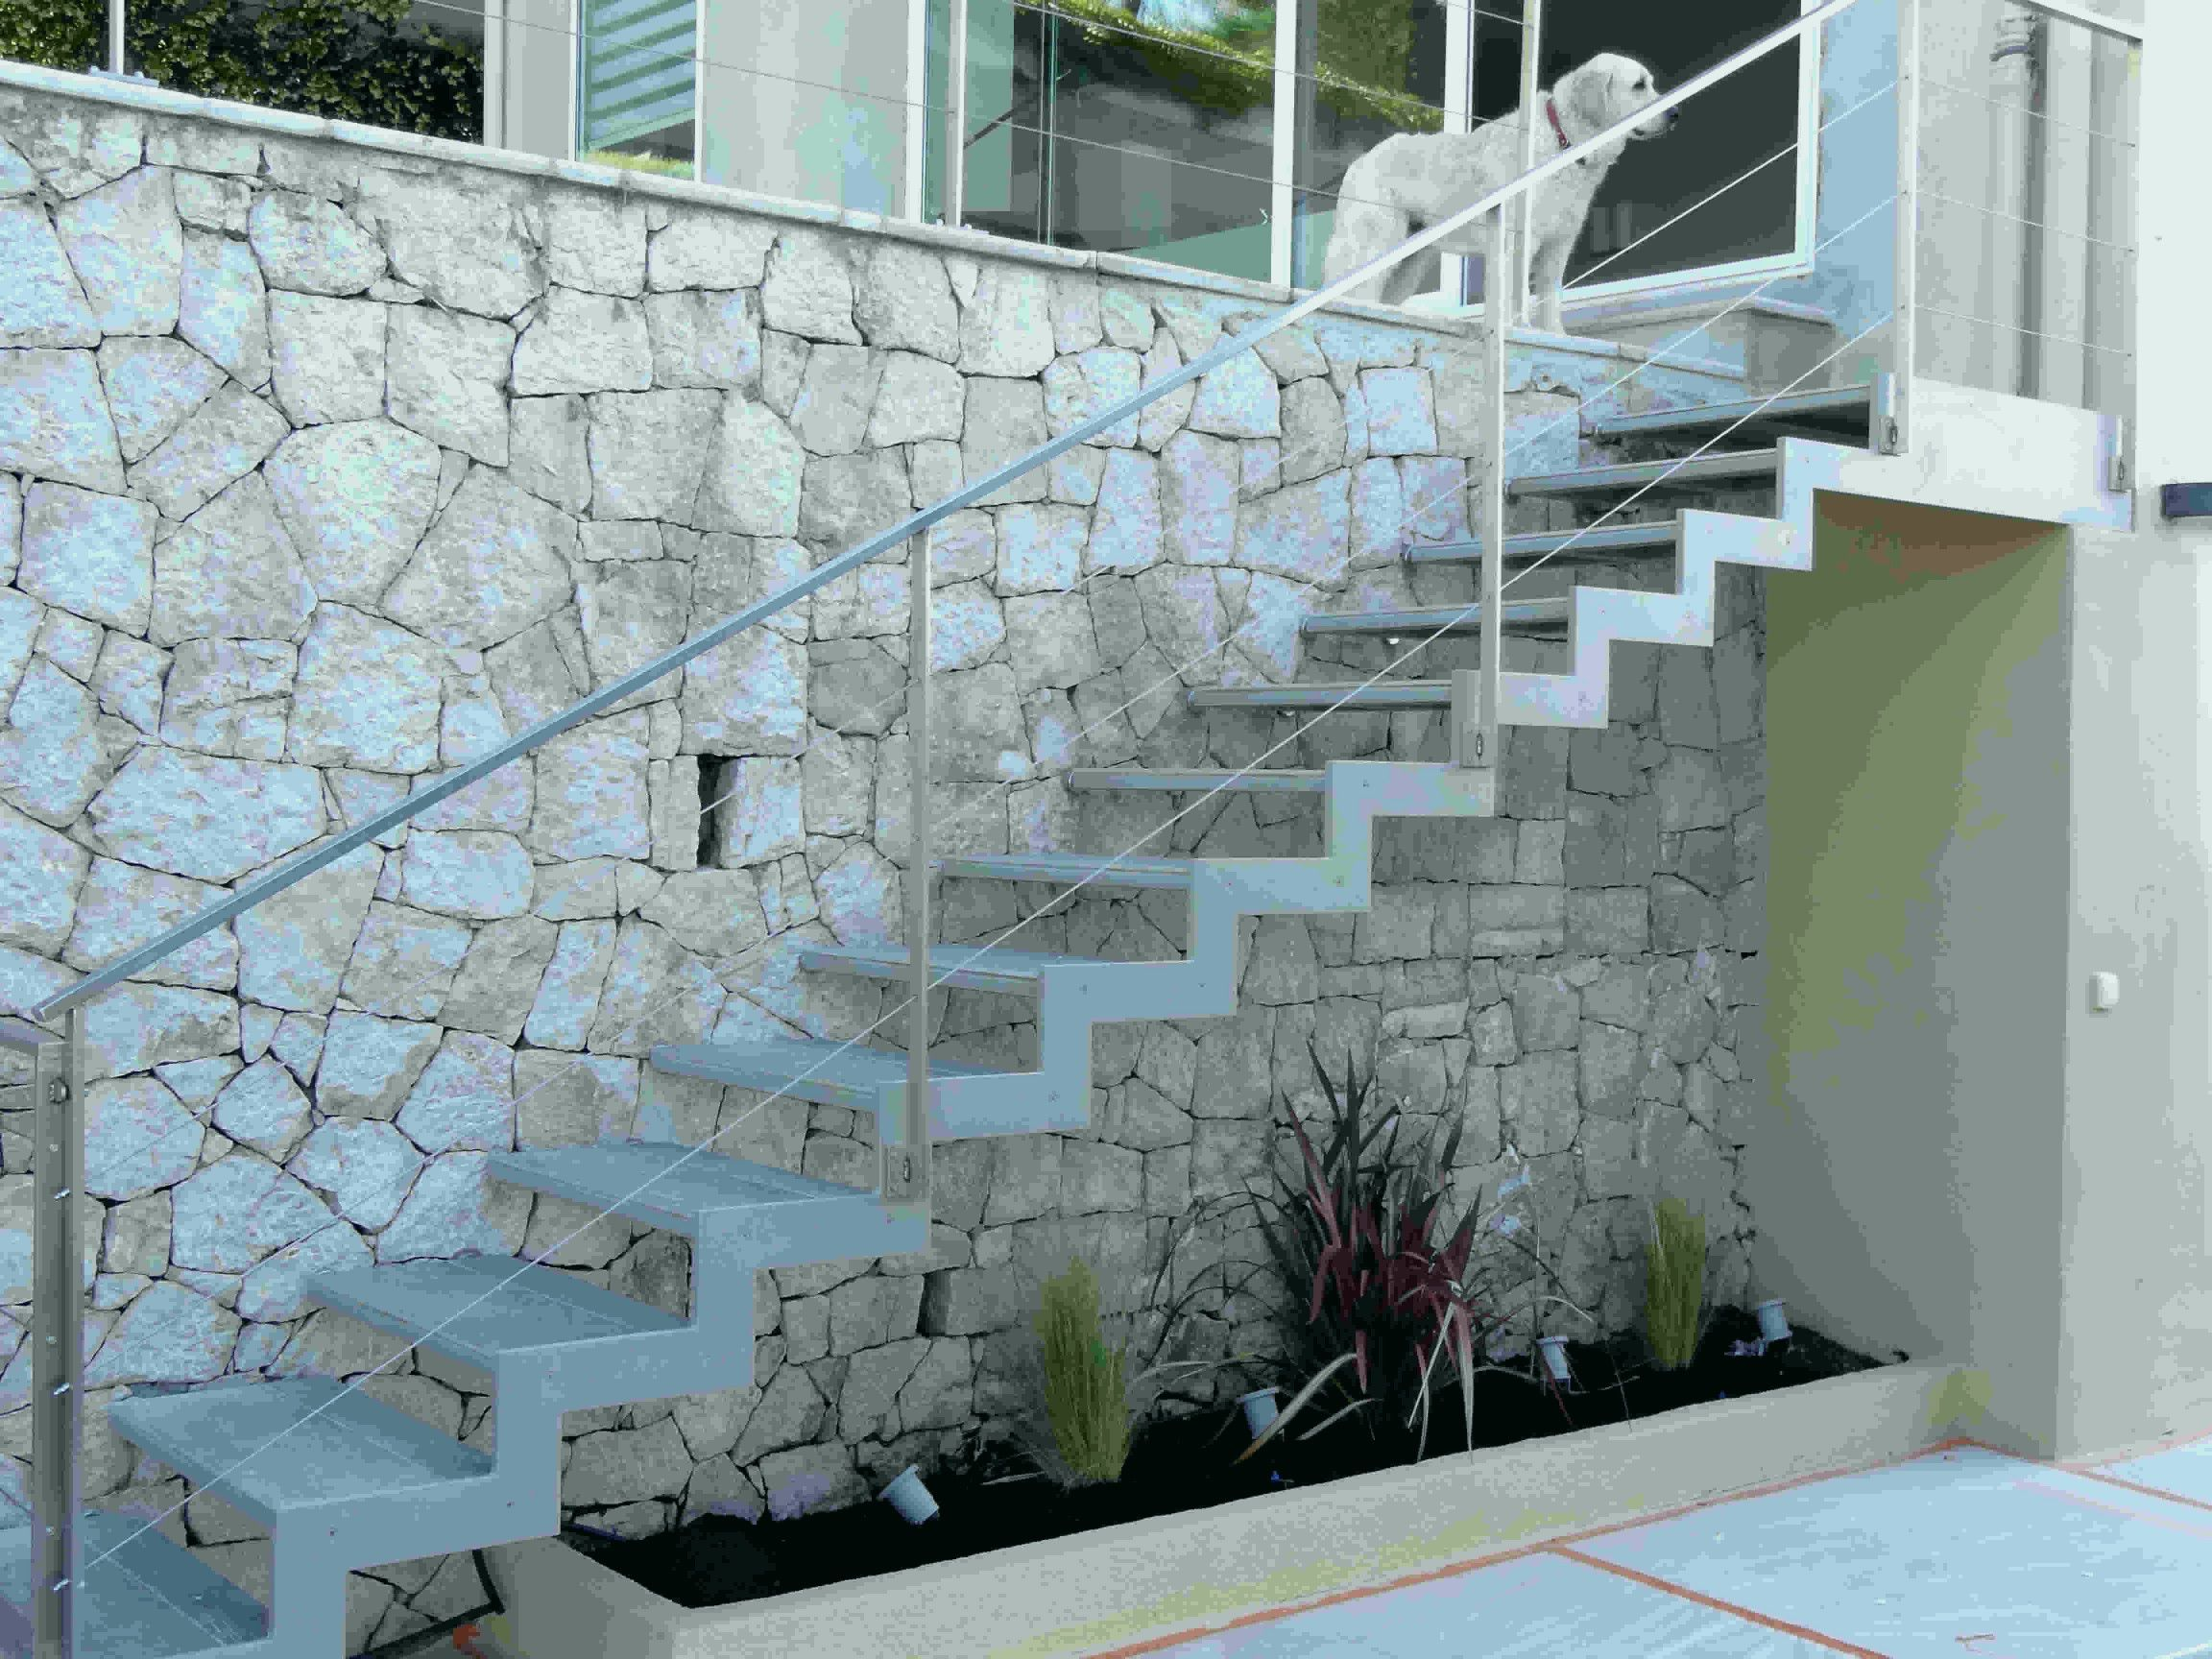 Luxury Carrelage Pour Escalier Interieur Leroy Merlin Outdoor Stairs Staircase Design Staircase